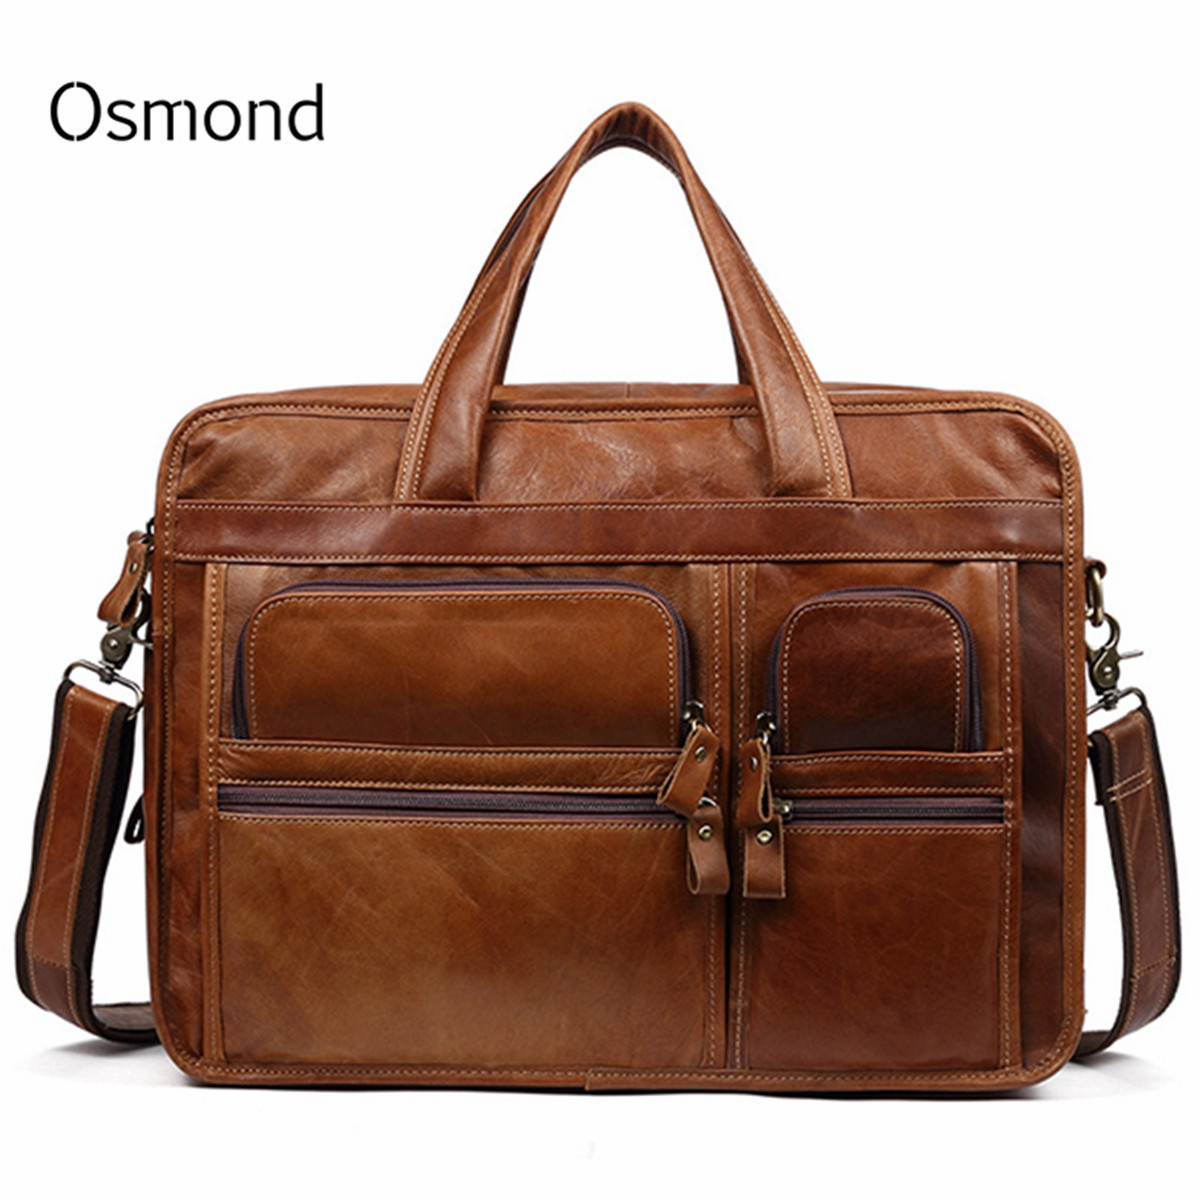 Osmond 100% Cowskin Genuine Leather Men's Briefcase Large Capacity Business Bag Shoulder Laptop Bag Tote Portfolio 2019 New